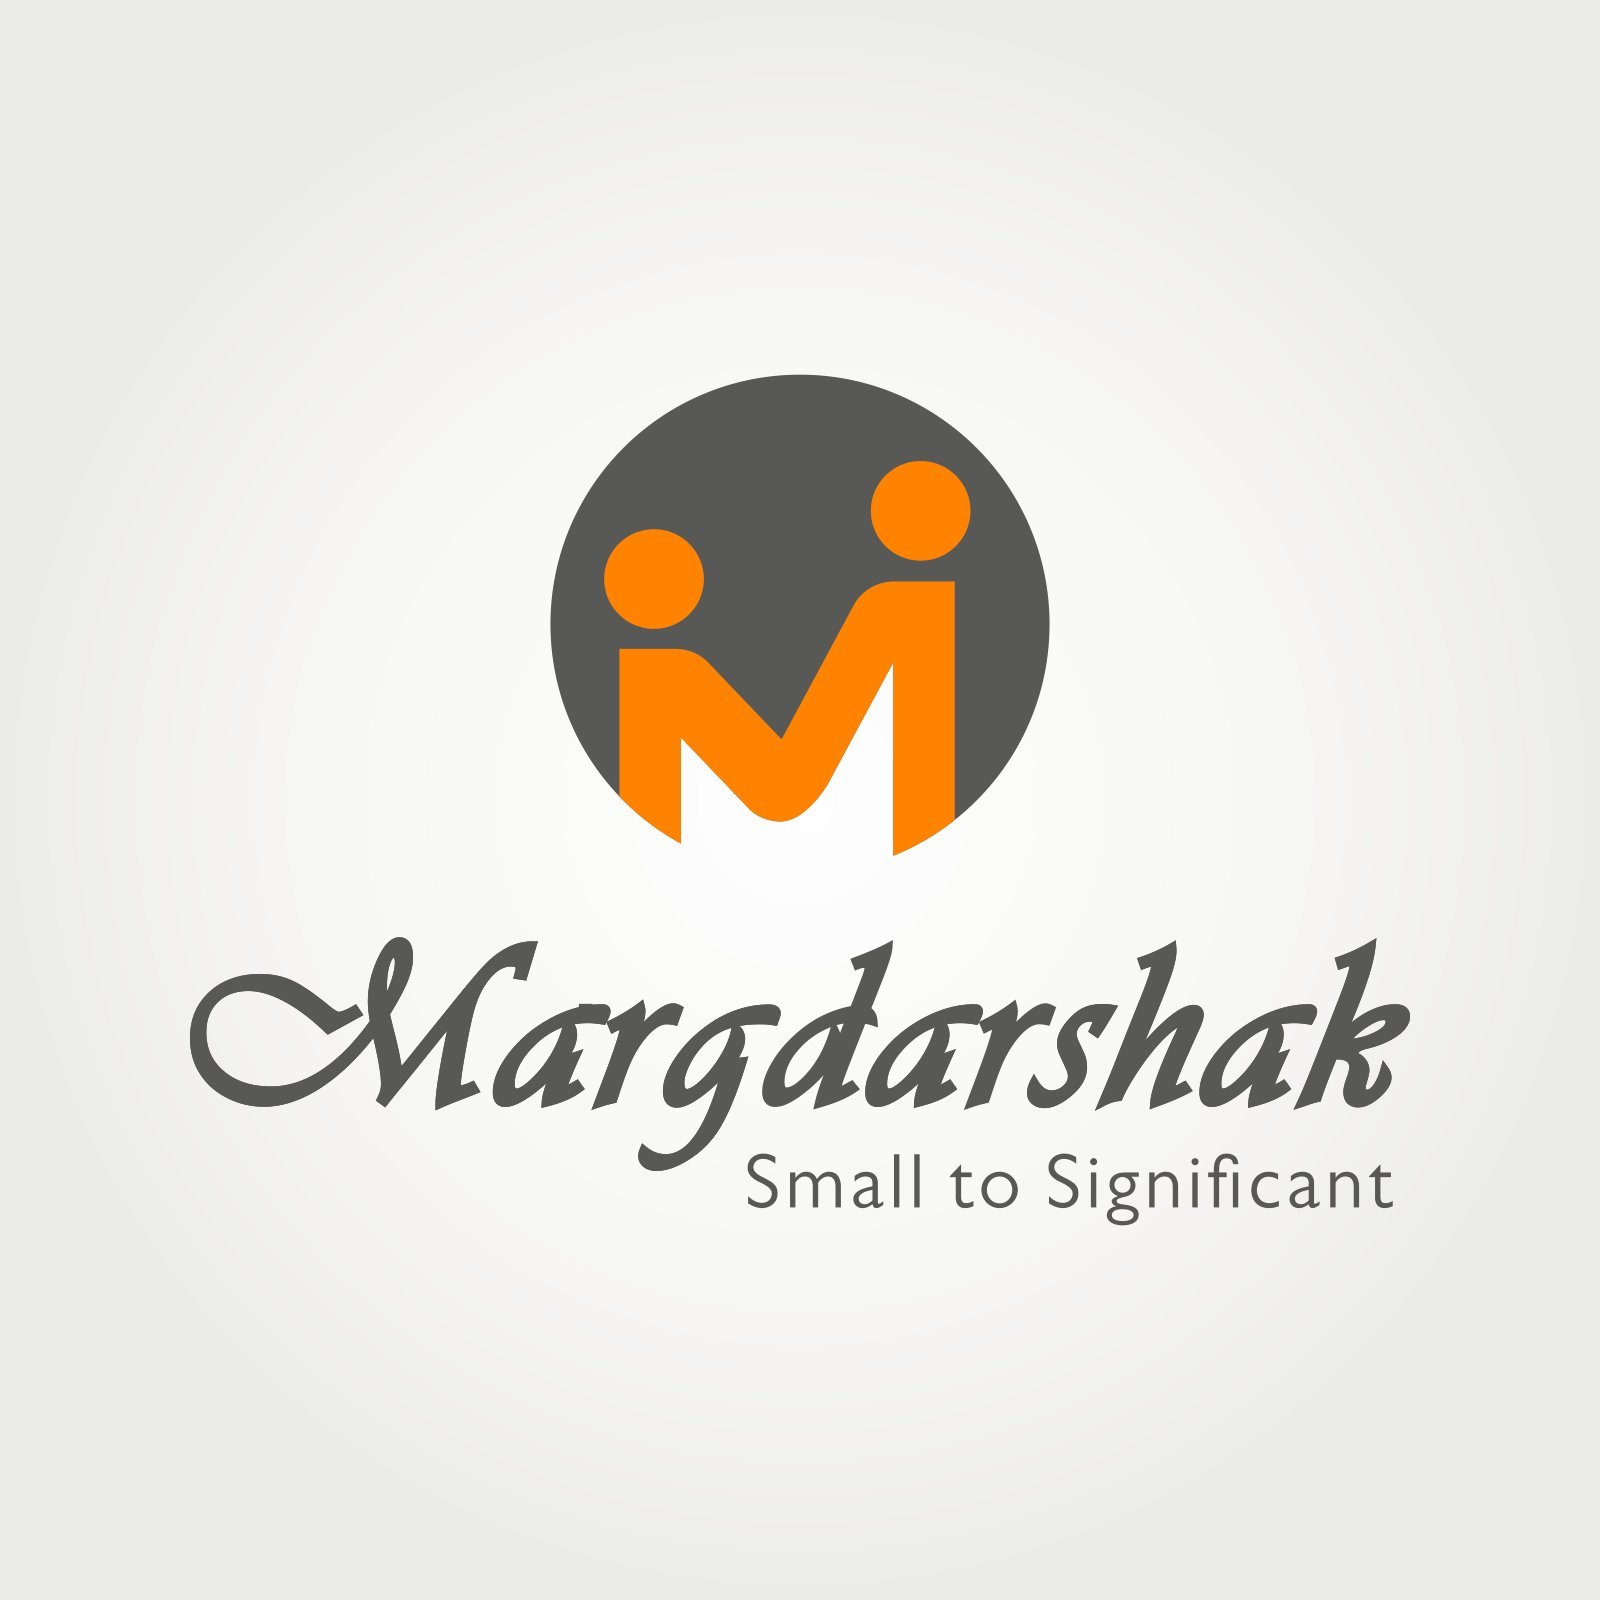 Margdarshak